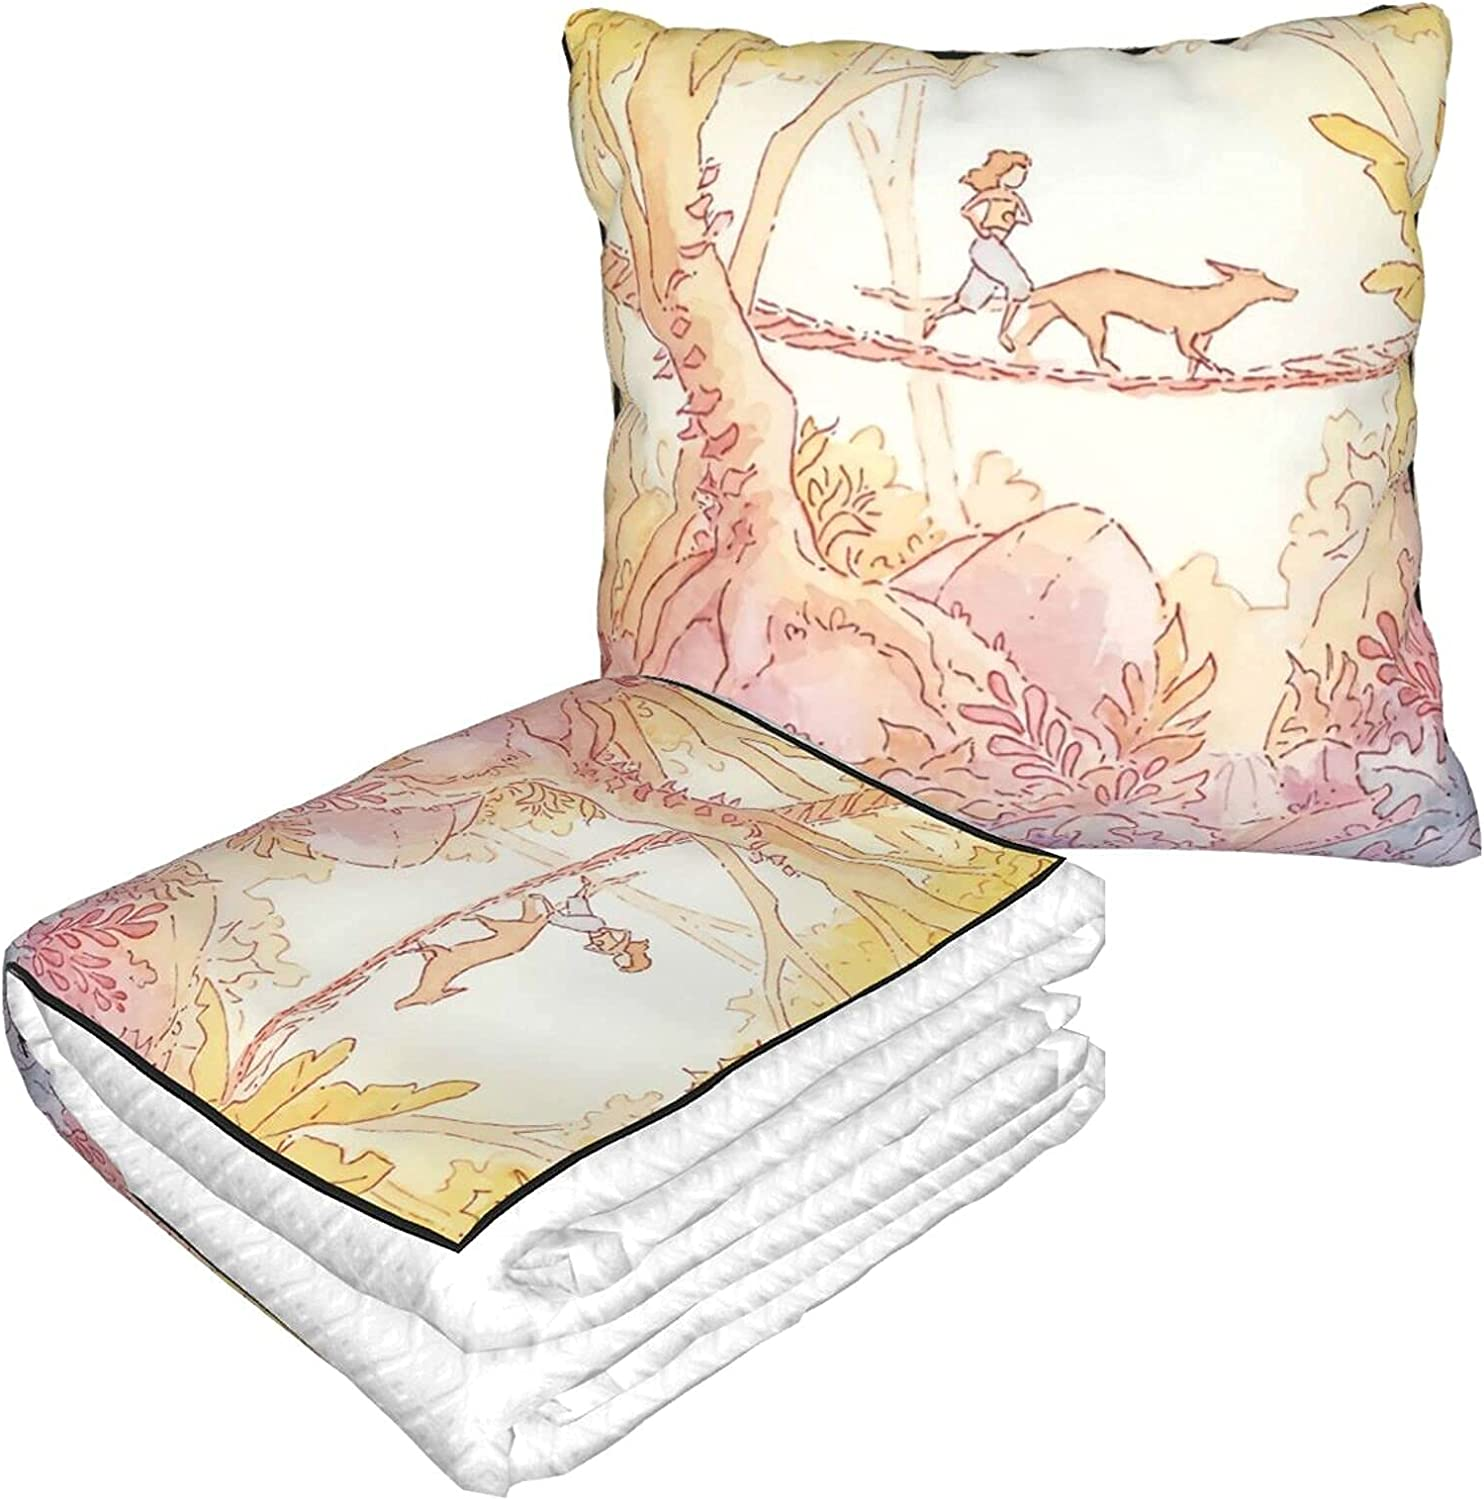 Travel Pillow Now New arrival free shipping Blanket for Airplanes Jungle Soft Pill in 1 Run 2